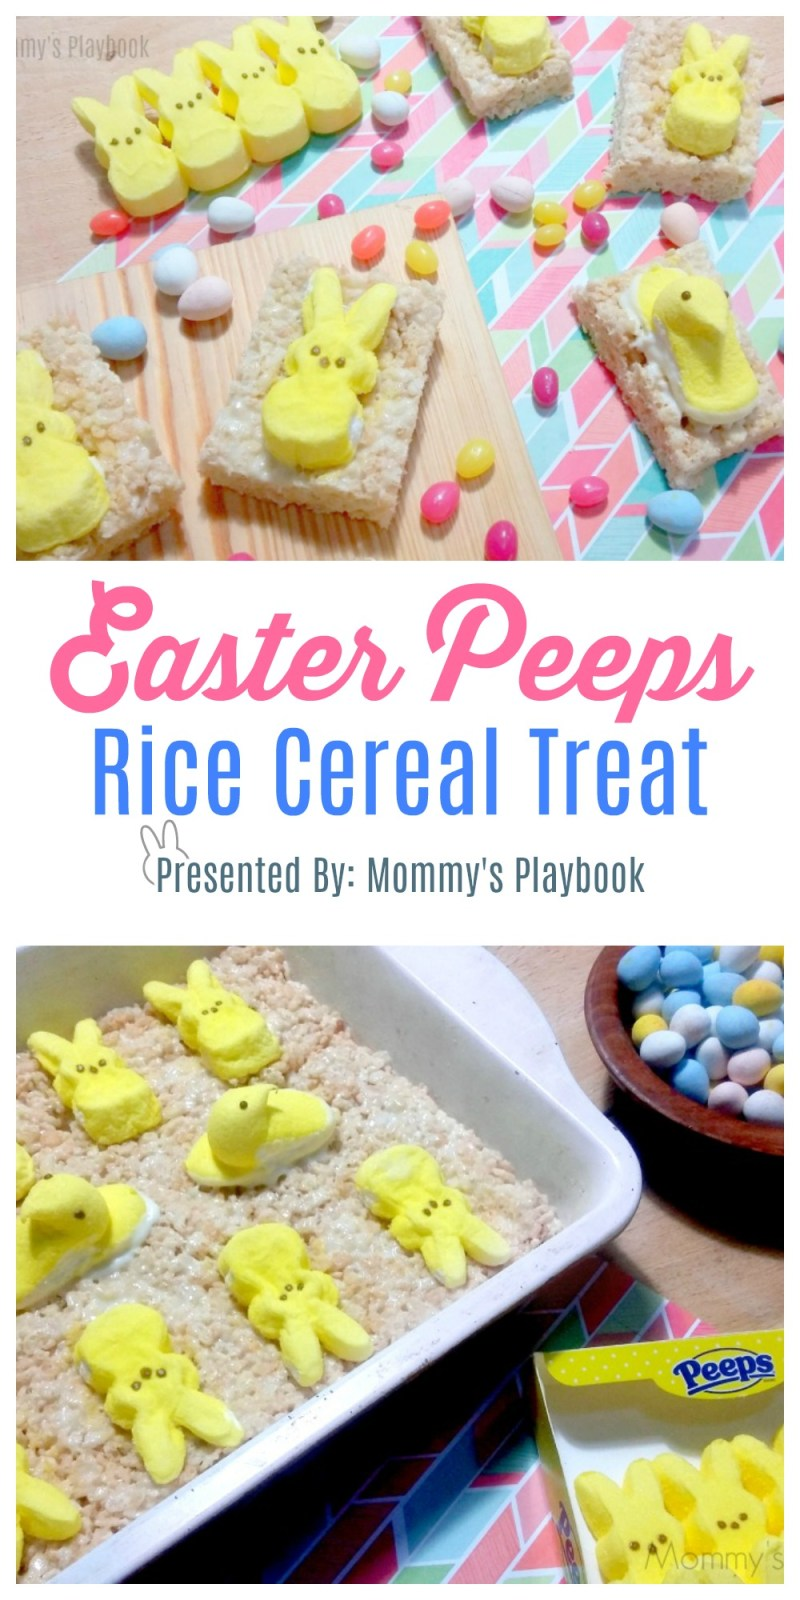 Easter Peeps Rice Cereal Treat #EasterSweetsandTreats #EasterDessert #EasterSnacks